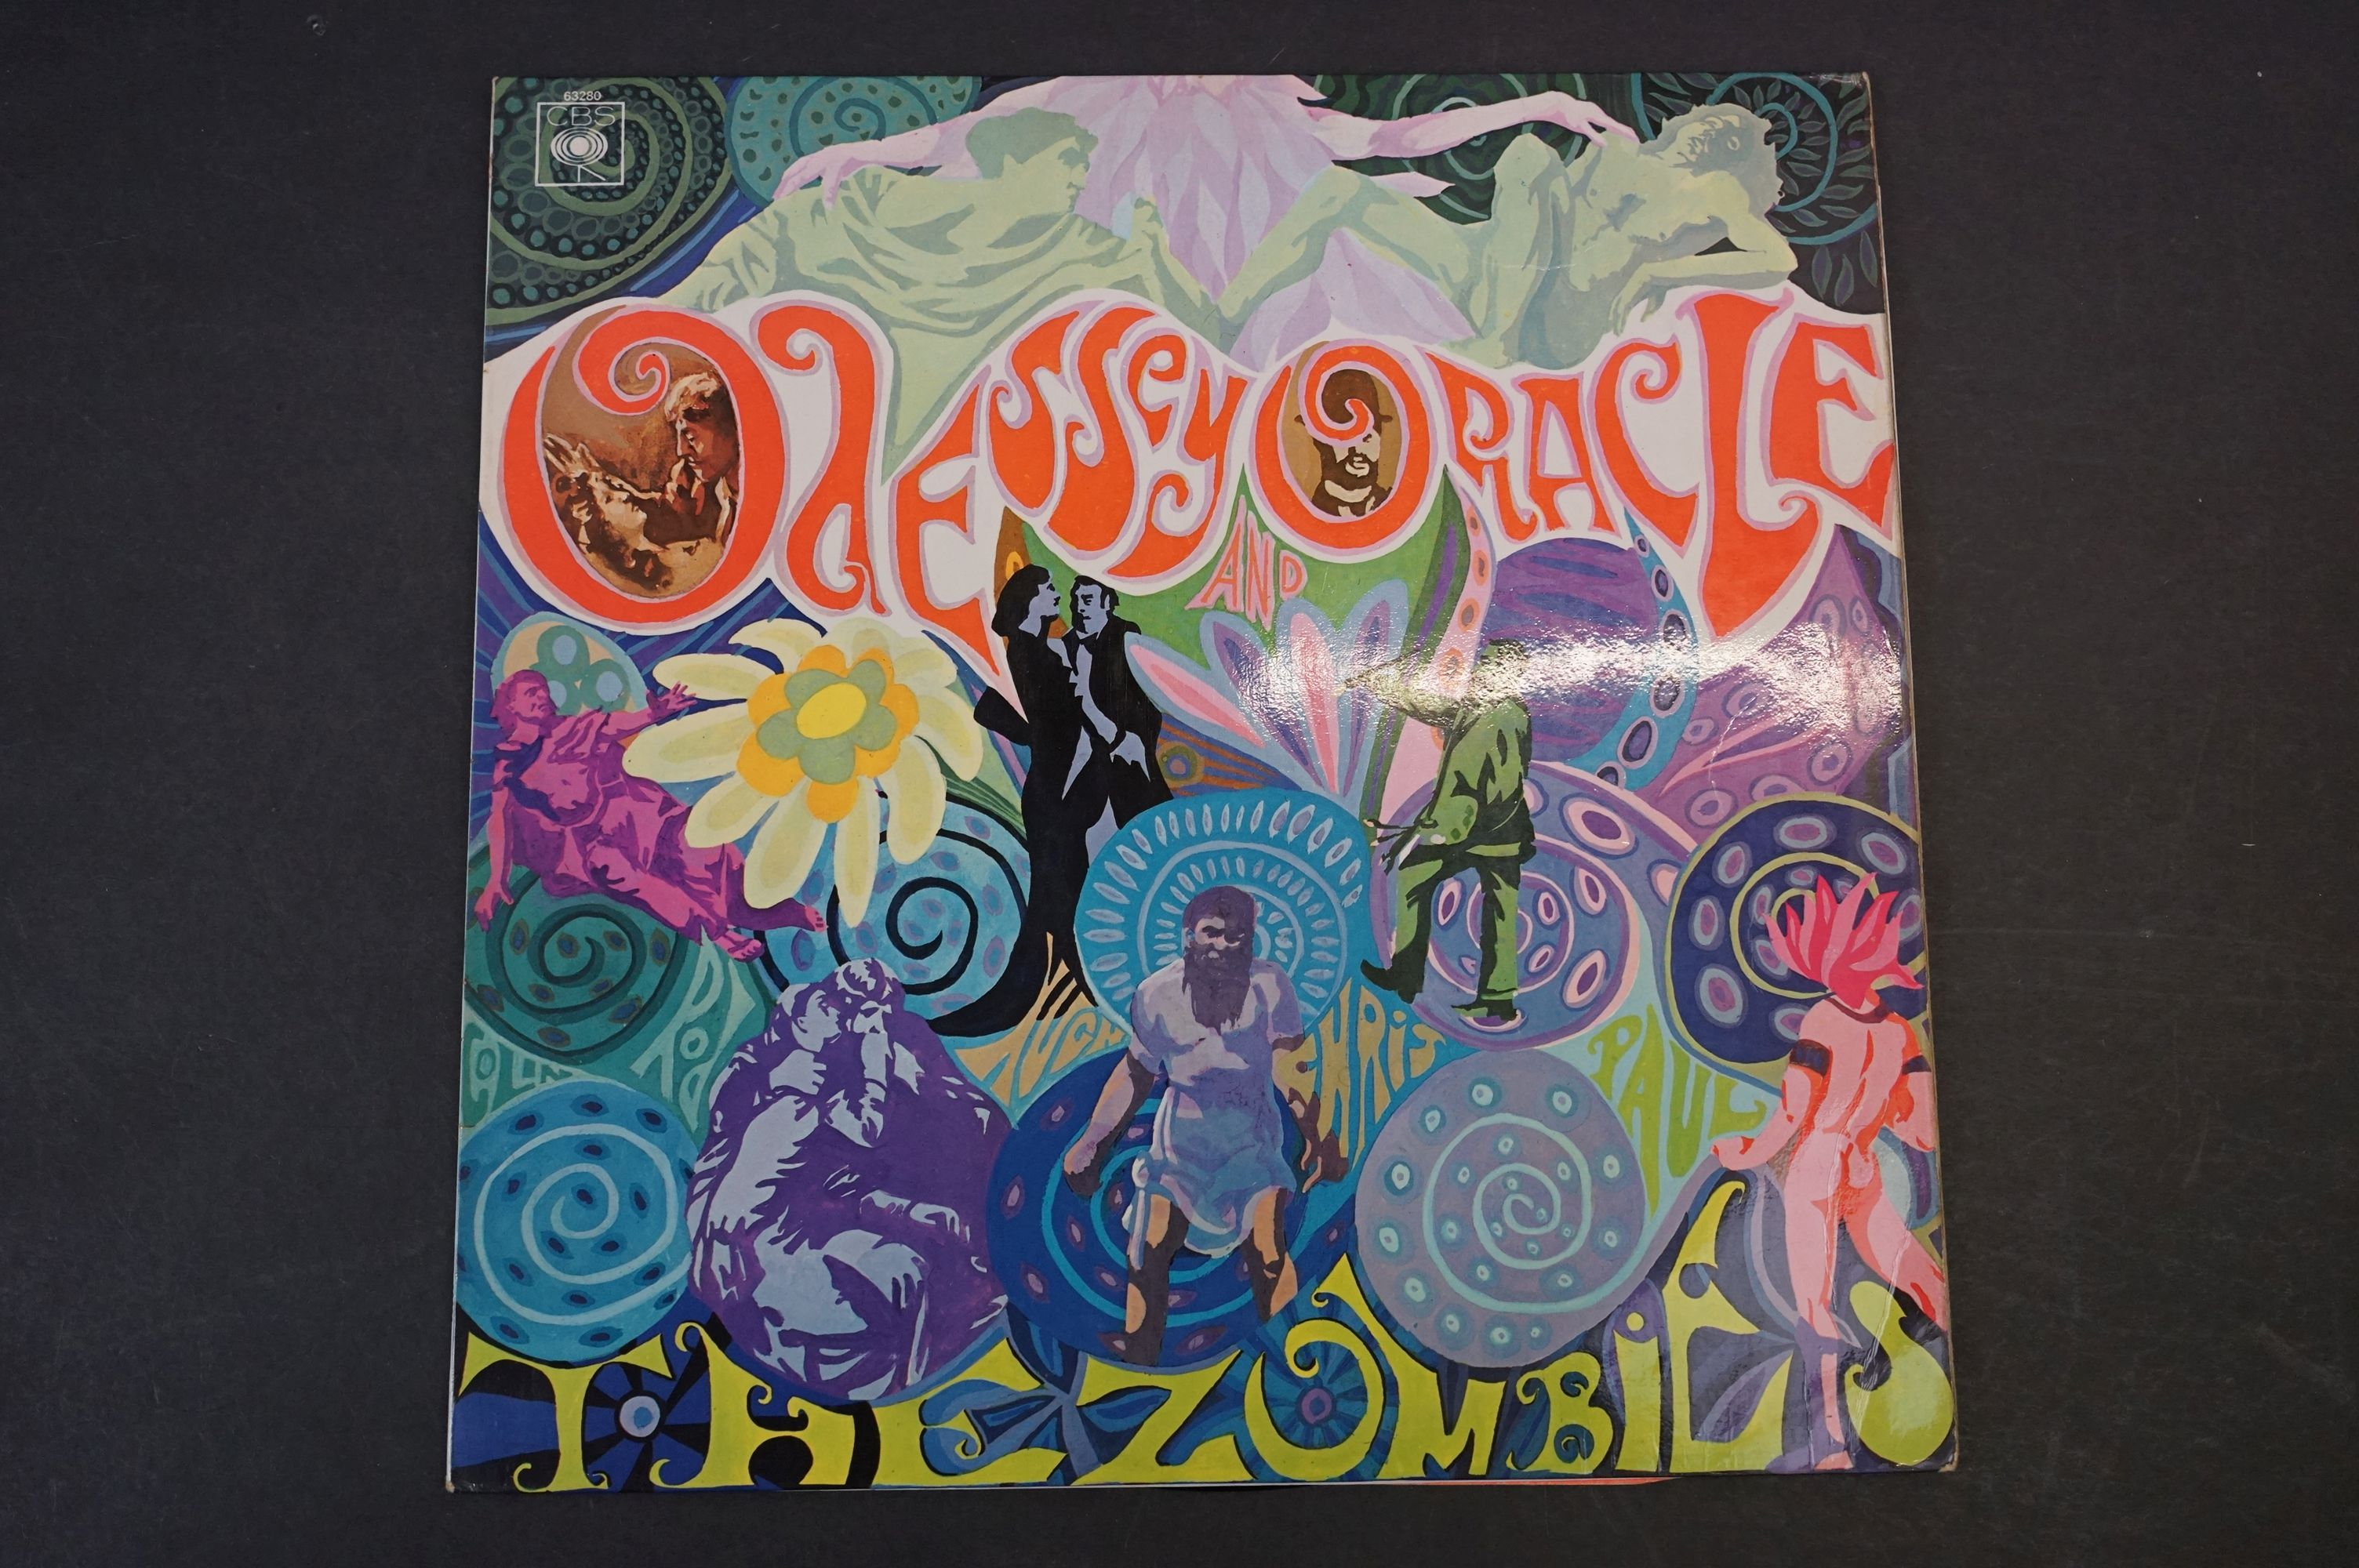 Vinyl - The Zombies Odessey and Oracle on CBS SBPG63280 Stereo, 1968, with CBS Inner sleeve, vinyl